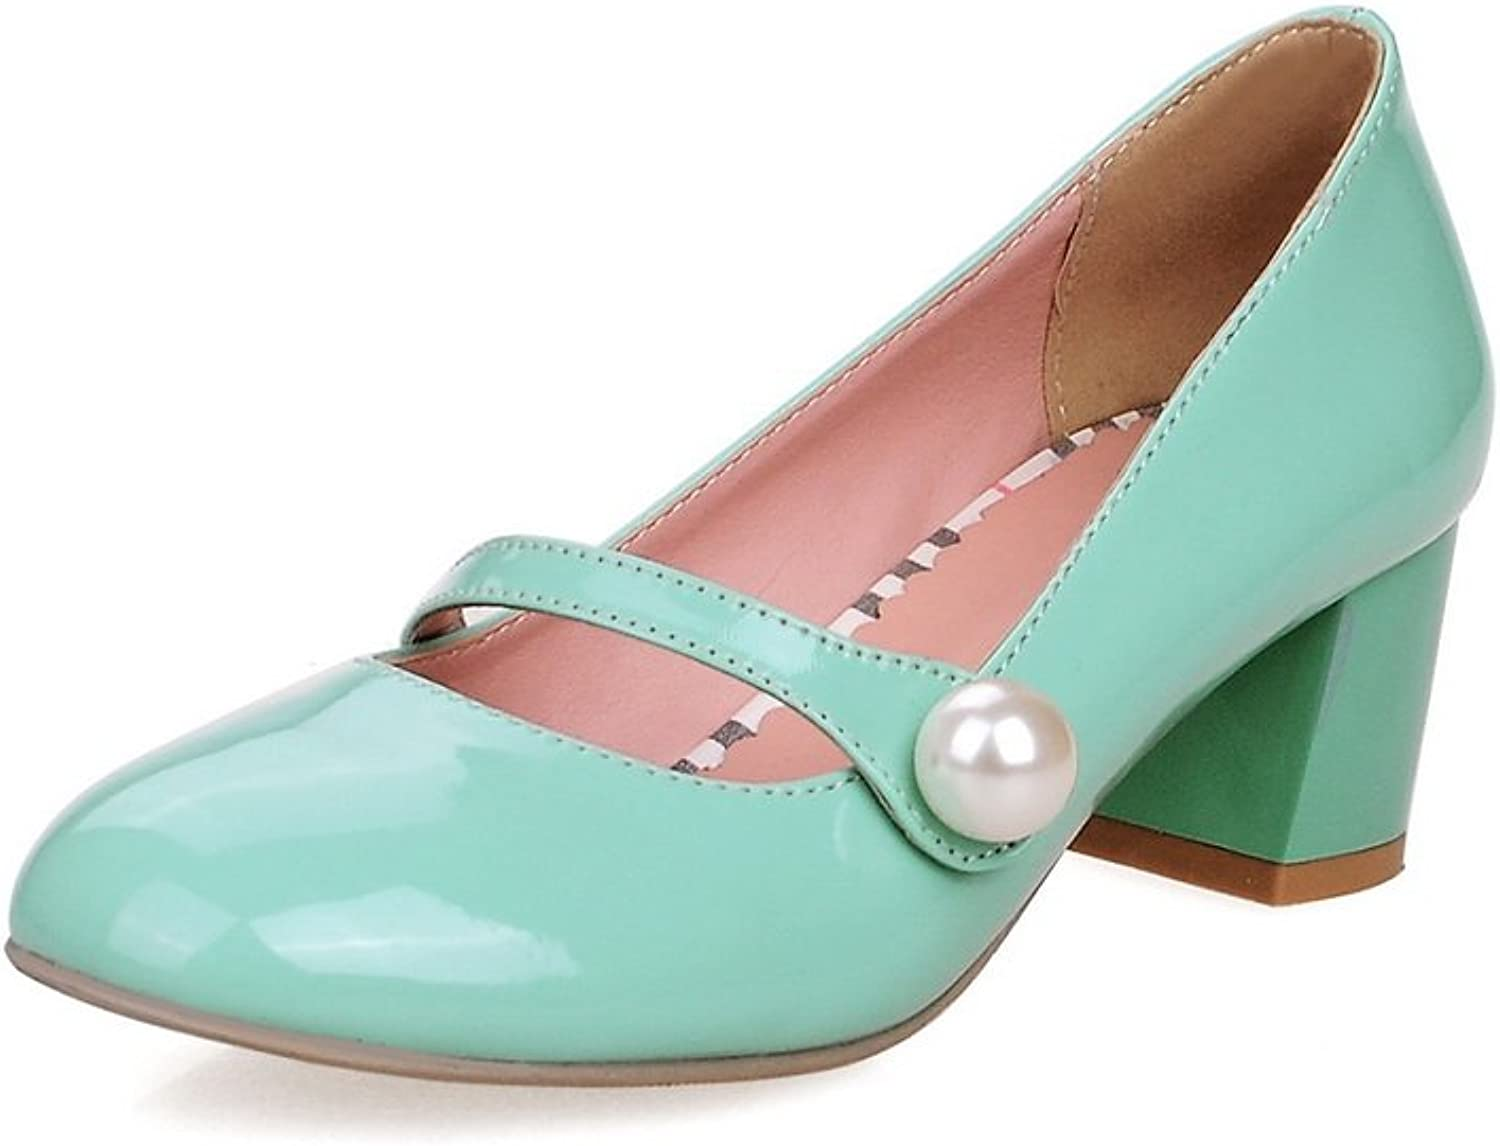 1TO9 Womens Chunky Heels Low-Cut Uppers Round-Toe Leather Pumps shoes MMS04337